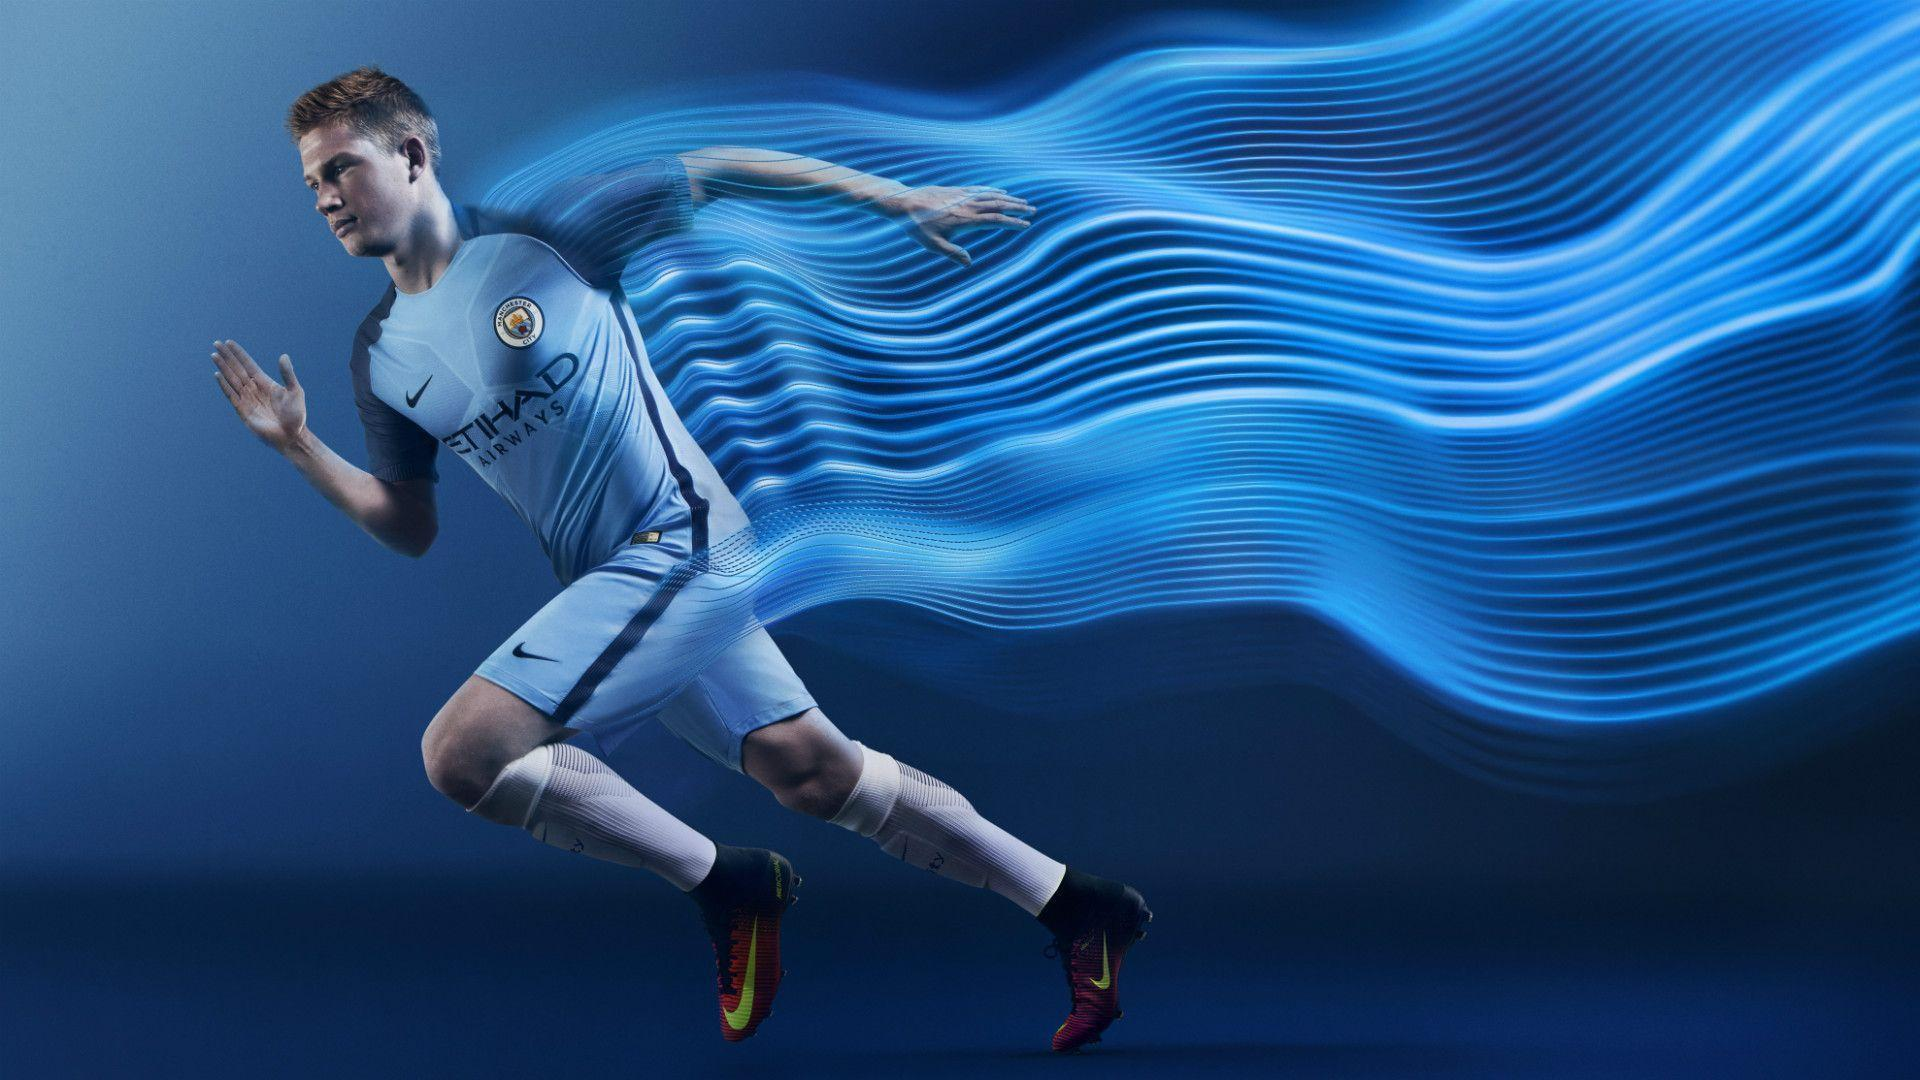 Man City Wallpapers 2015: Man City Wallpapers 2017